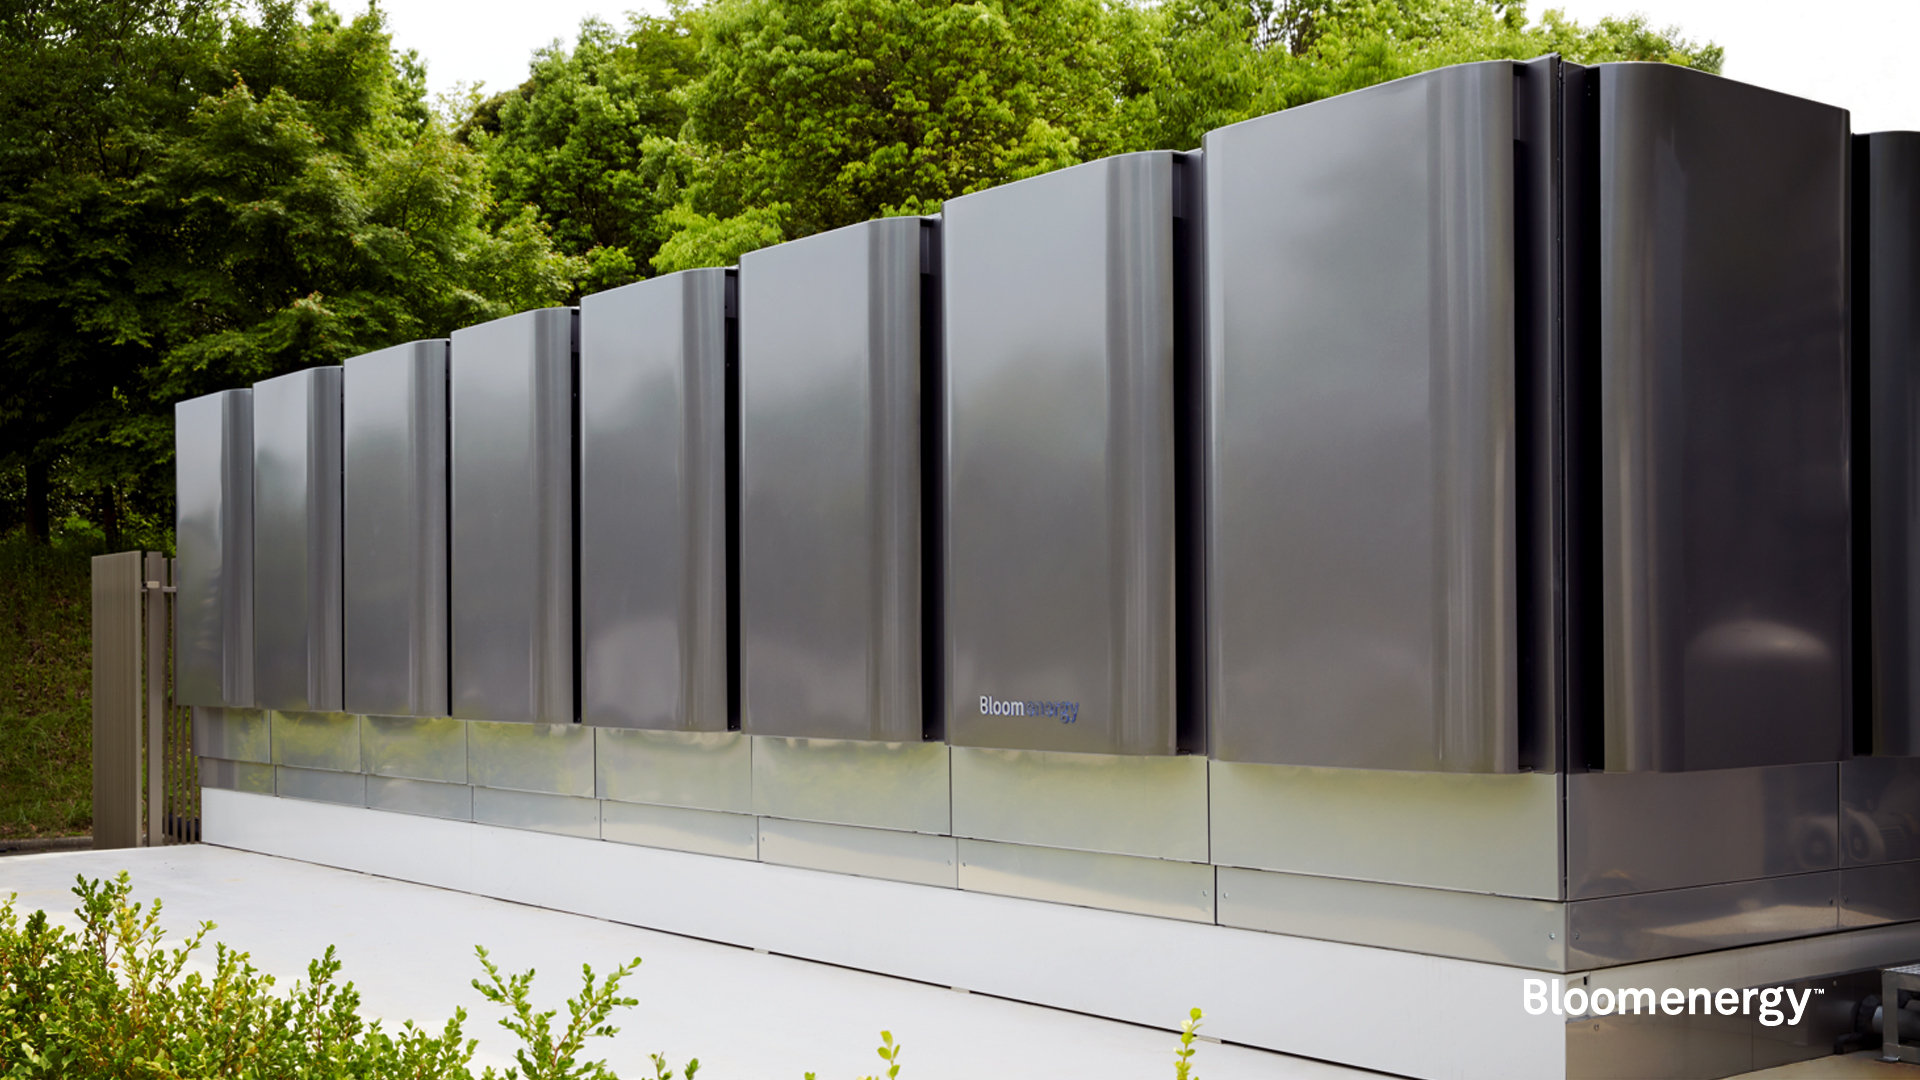 Bloom Energy Fuel Cell Micro Grid